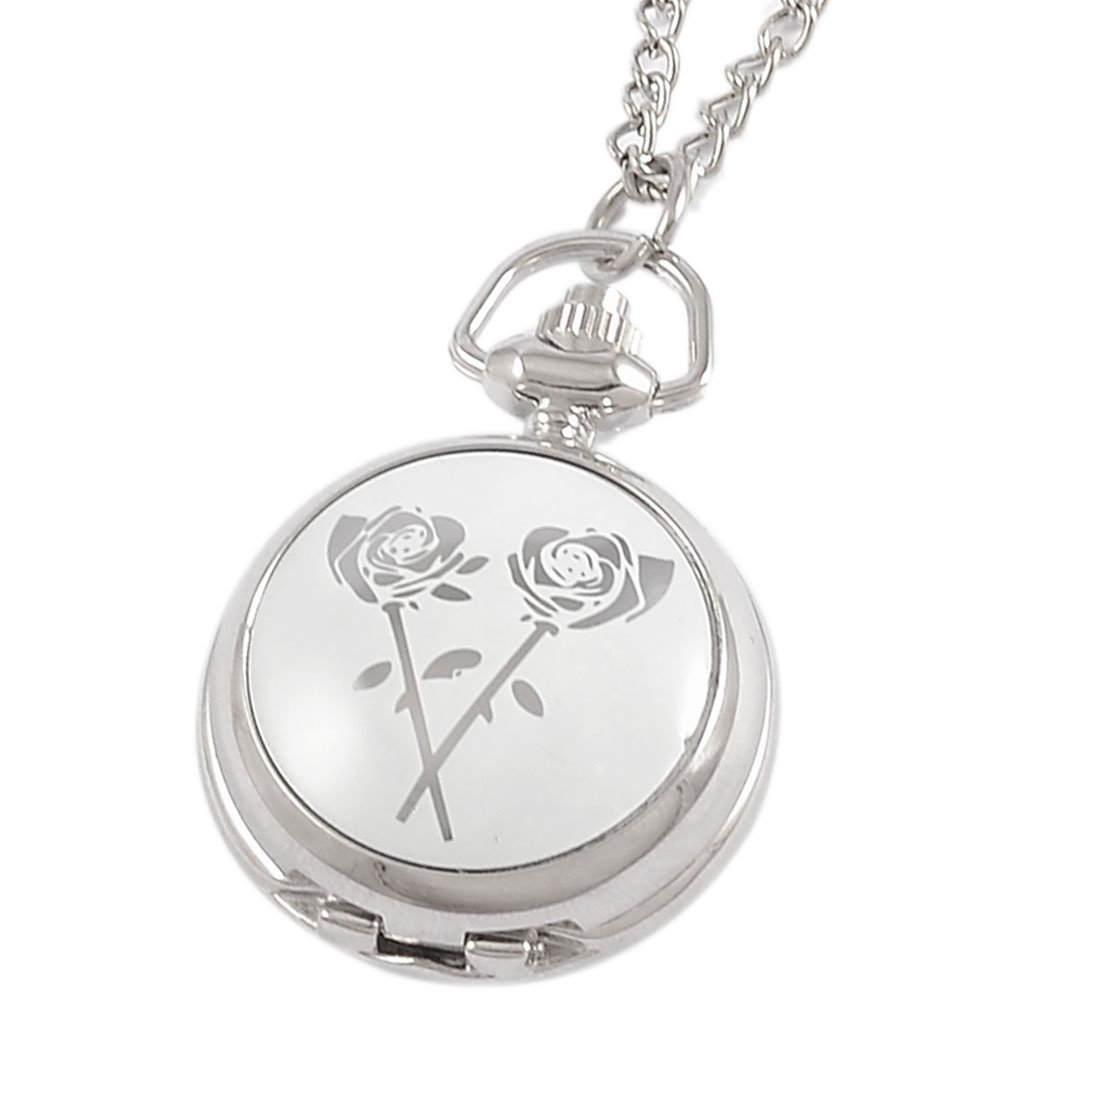 YCYS Rose Print Adjustable Time Metal Necklace Pendant Watch For Lady Fob Watches